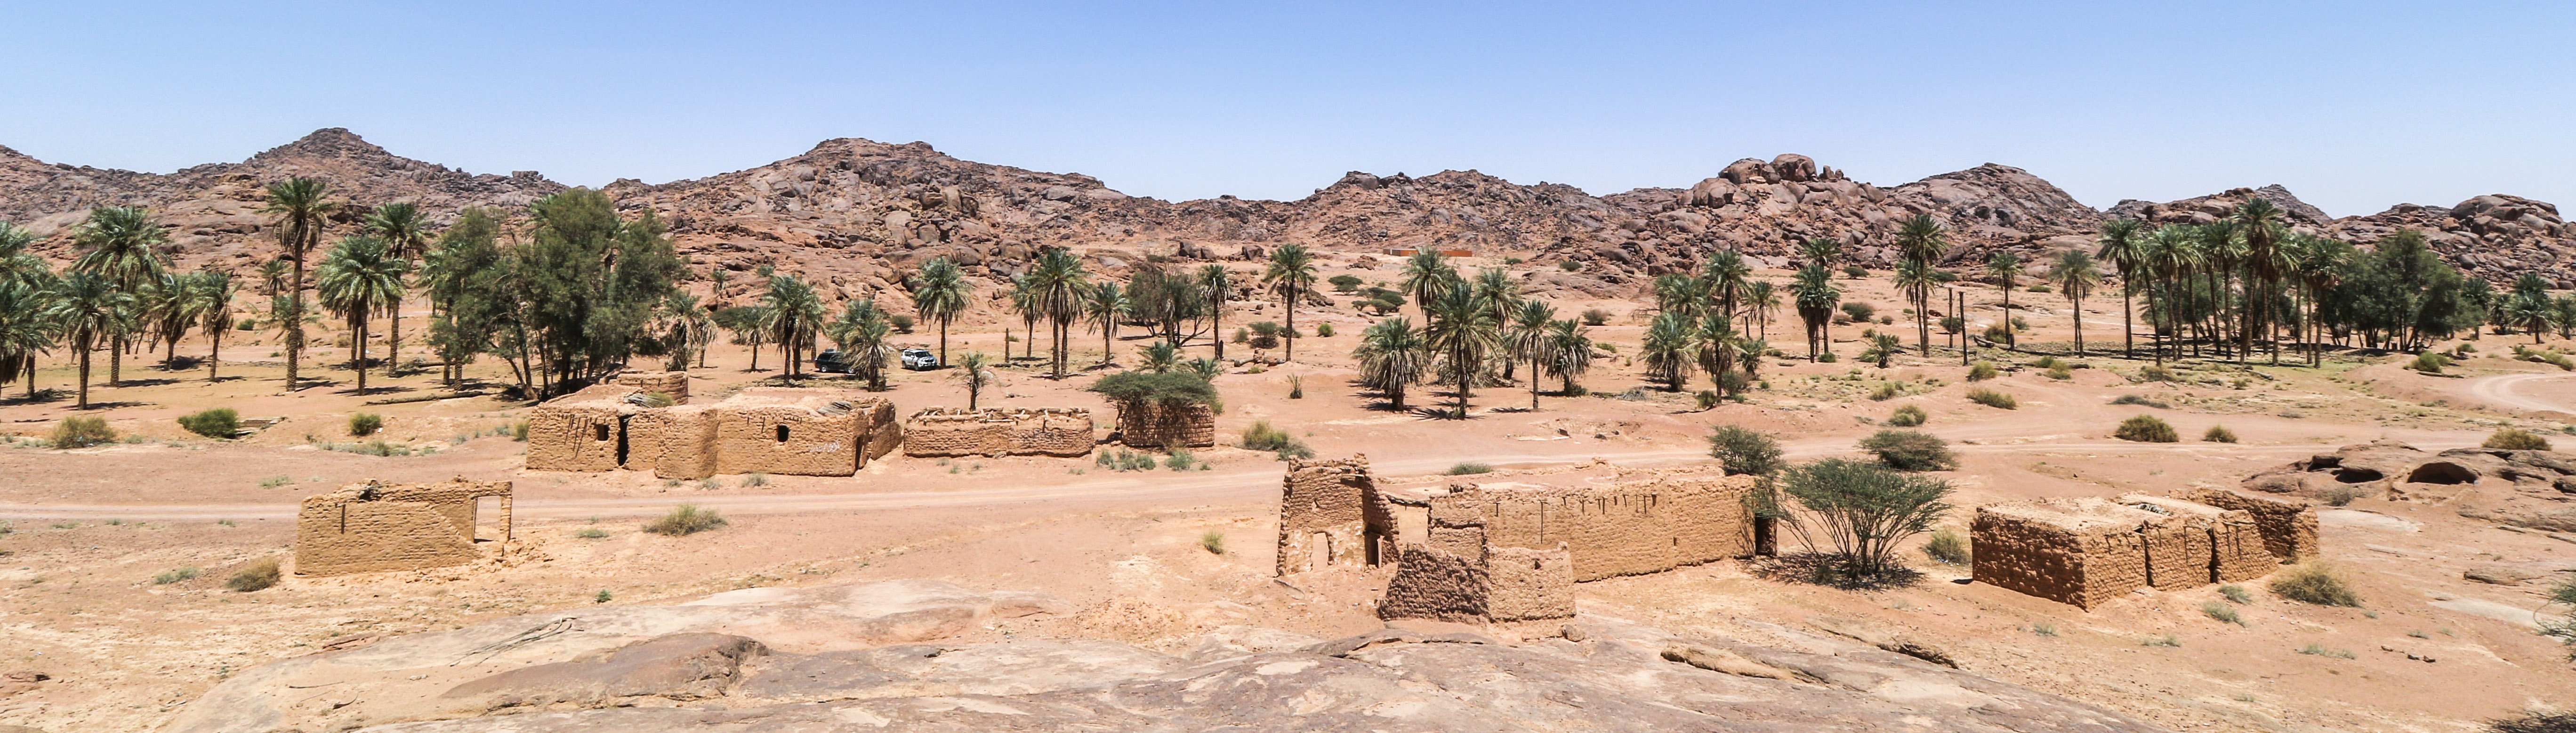 Traditional village at Jabal Aban Al-Asmar (photo: Florent Egal)